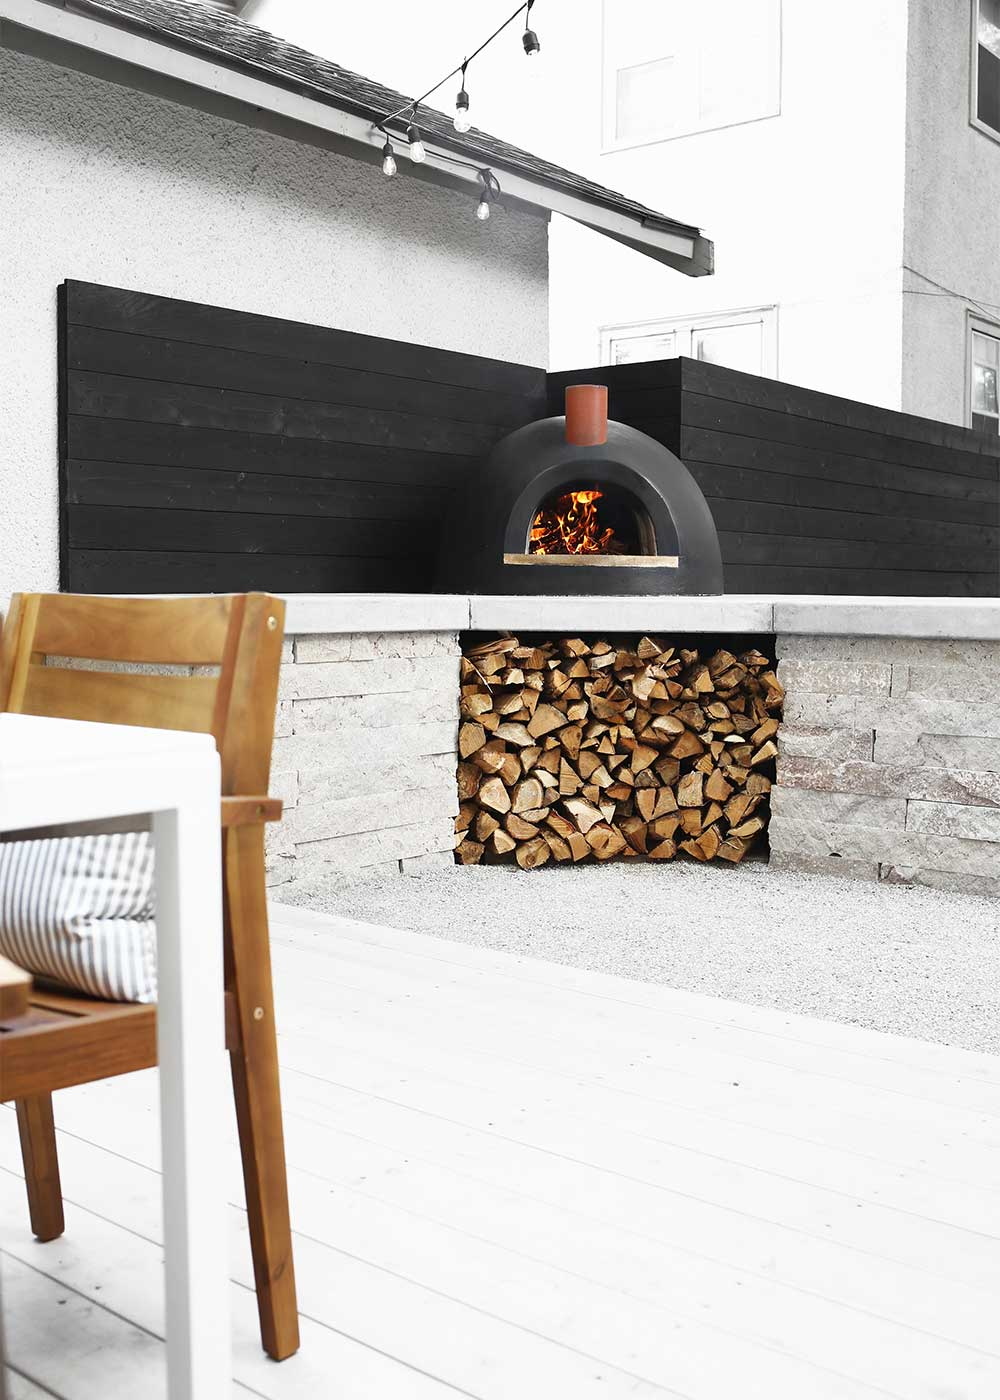 Forno Bravo Wood Fired Pizza Oven from The Fauxmartha